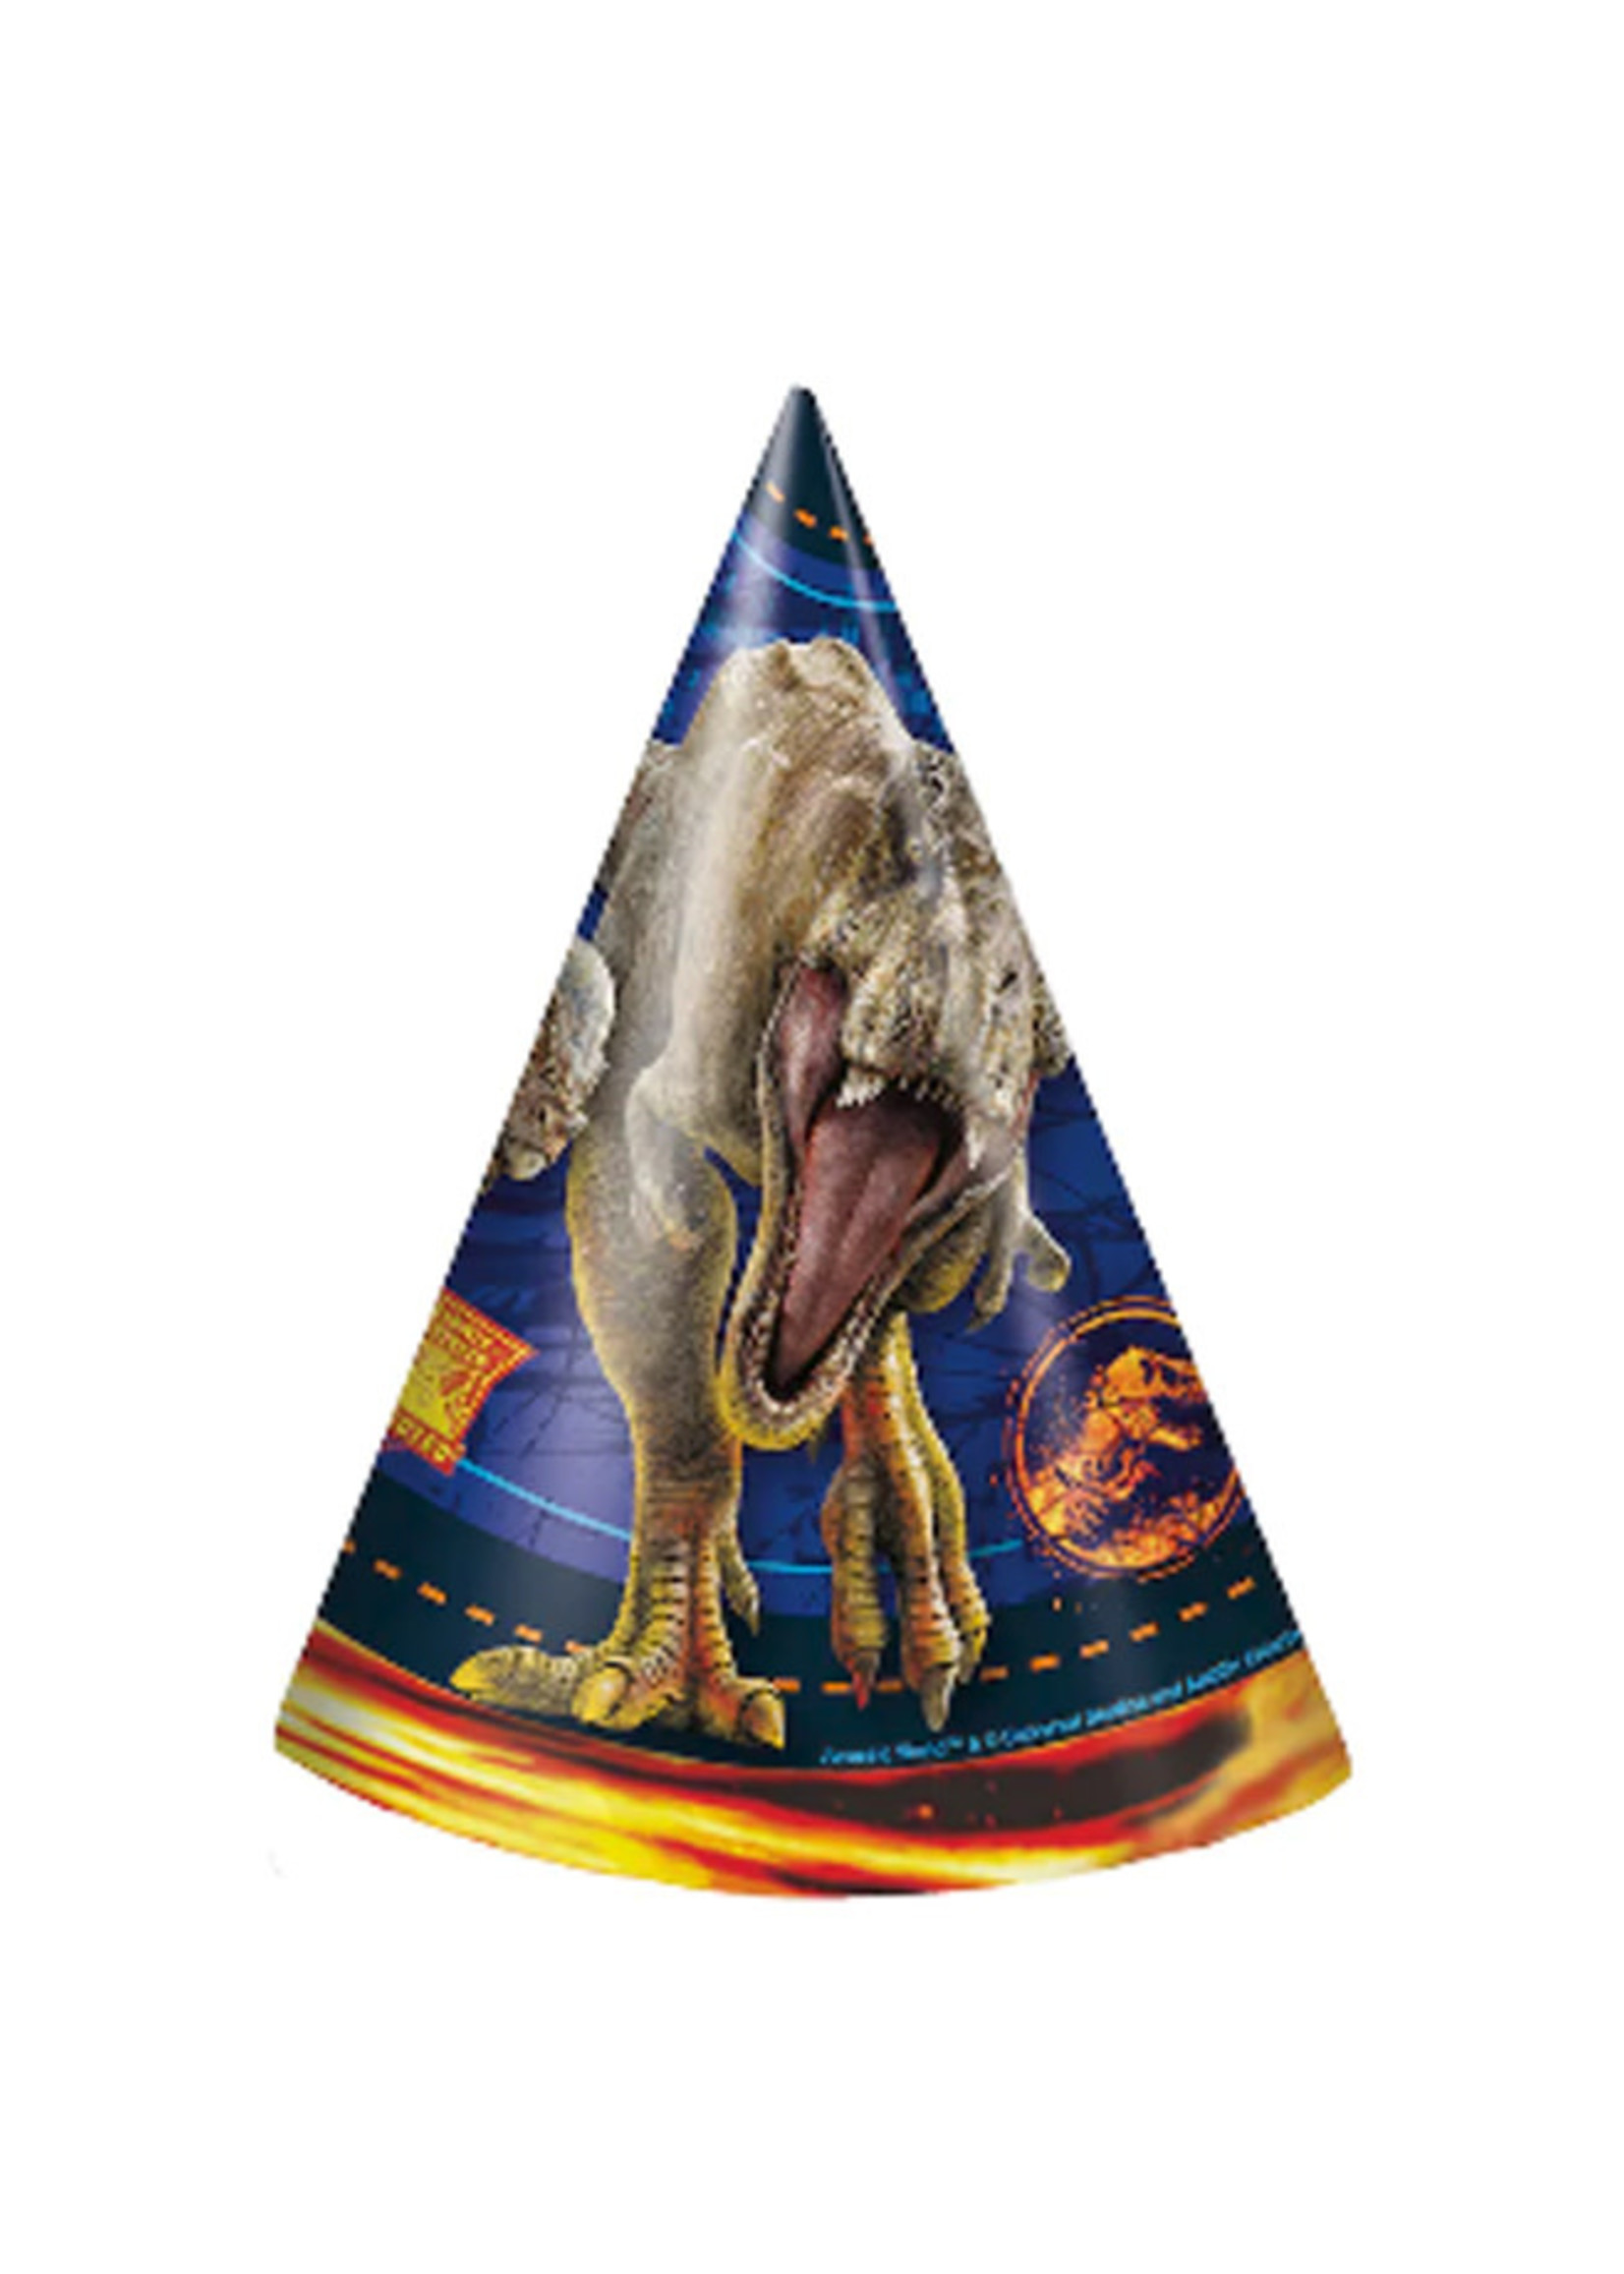 UNIQUE INDUSTRIES INC Jurassic World: Fallen Kingdom Party Hats - 8ct